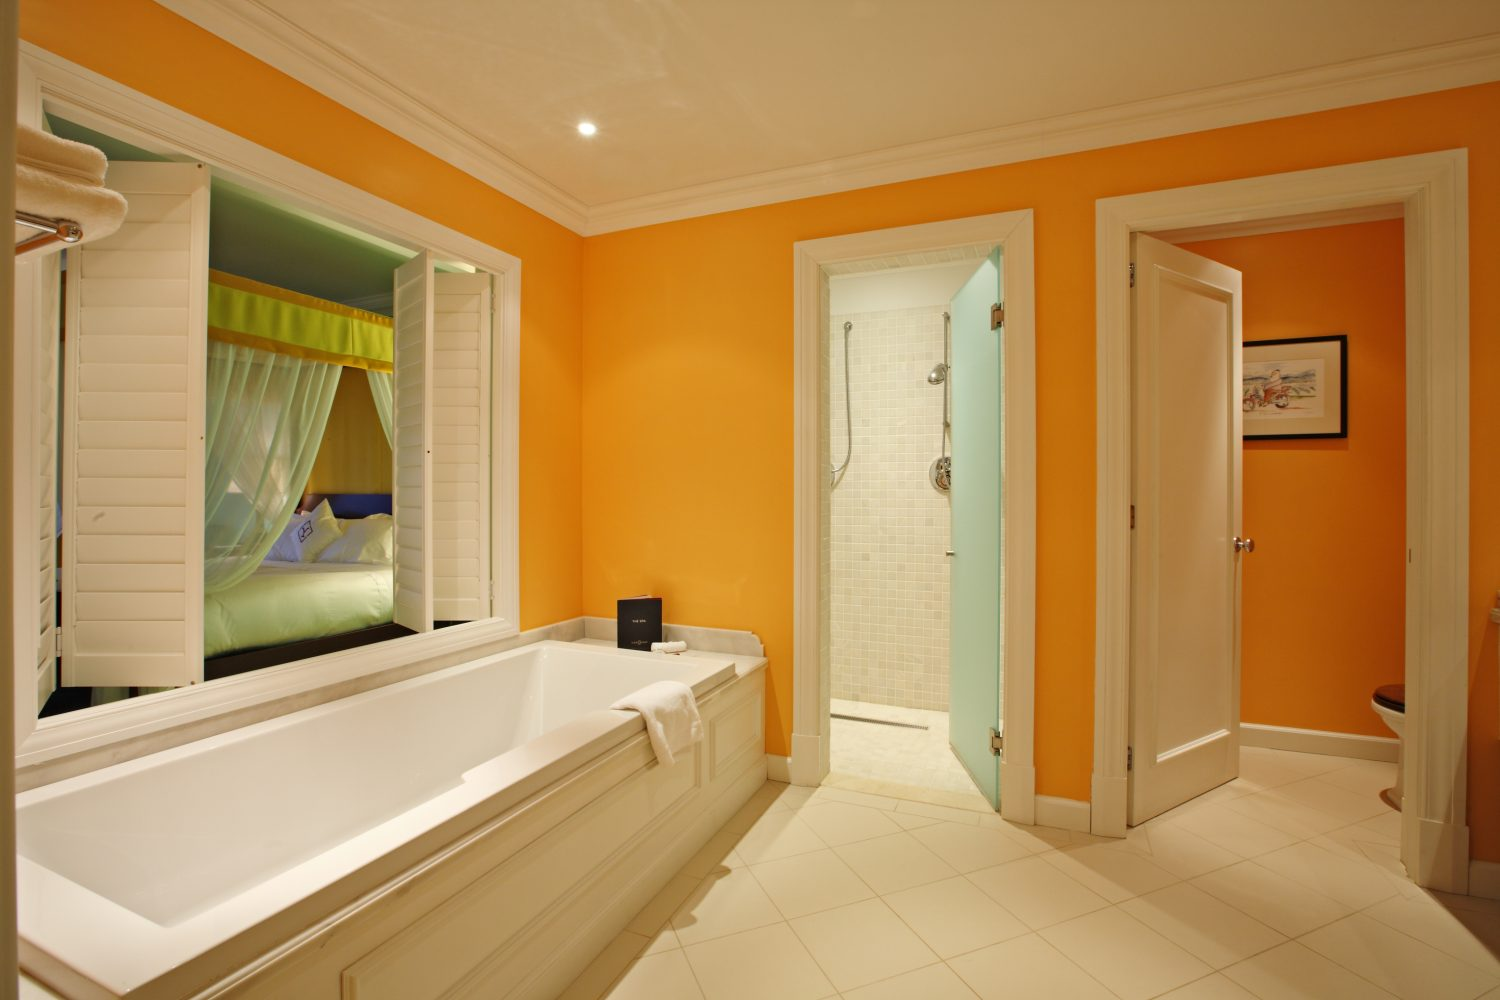 Suite Grahams bathroom at Yeatman Relais & Chateaux Hotel